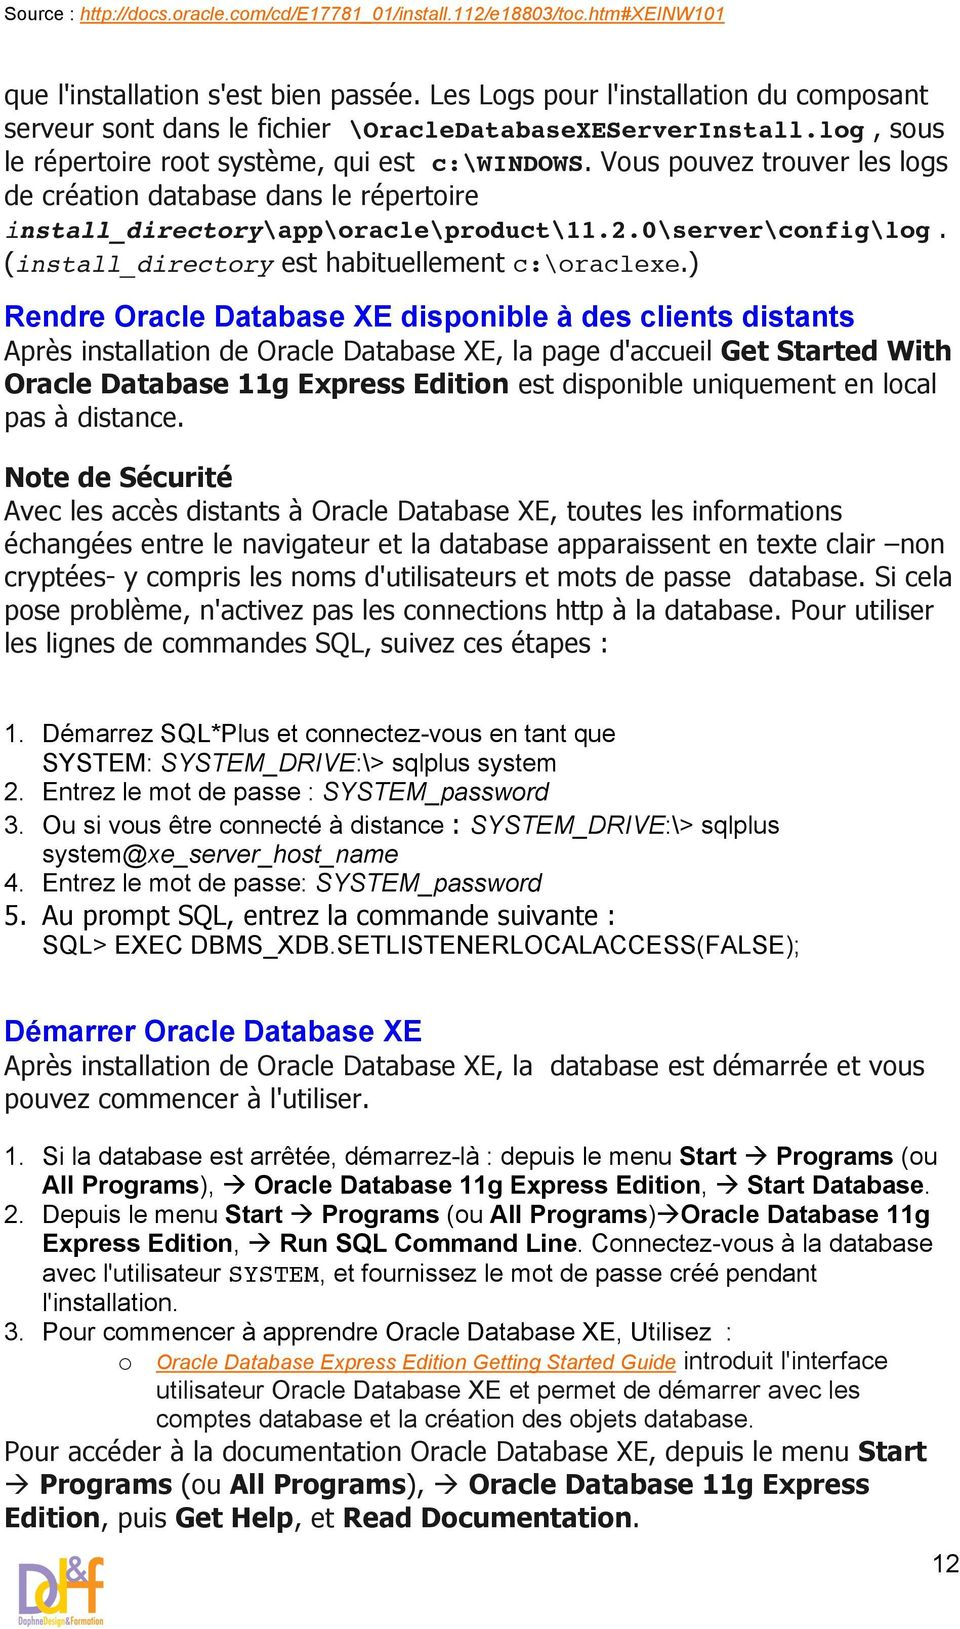 ) Rendre Oracle Database XE disponible à des clients distants Après installation de Oracle Database XE, la page d'accueil Get Started With Oracle Database 11g Express Edition est disponible